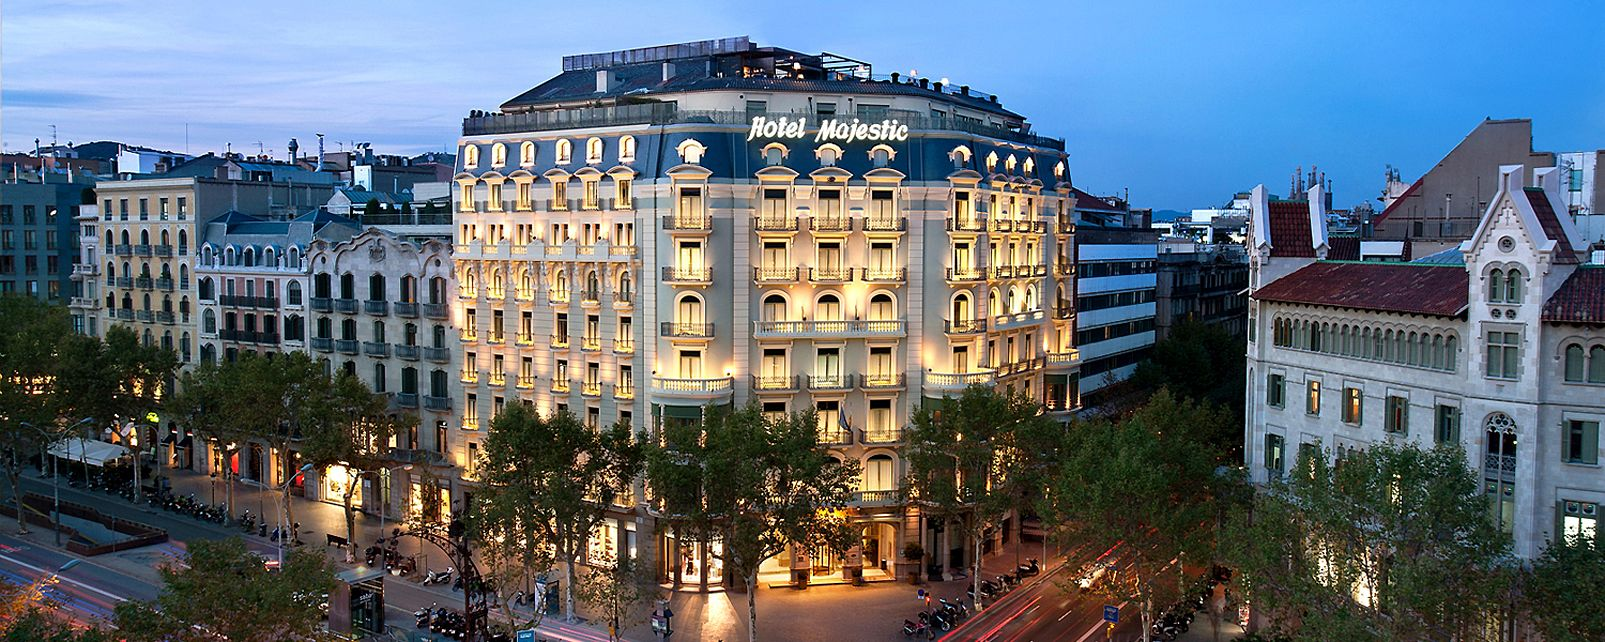 Hotel Majestic Hotel and Spa Barcelona